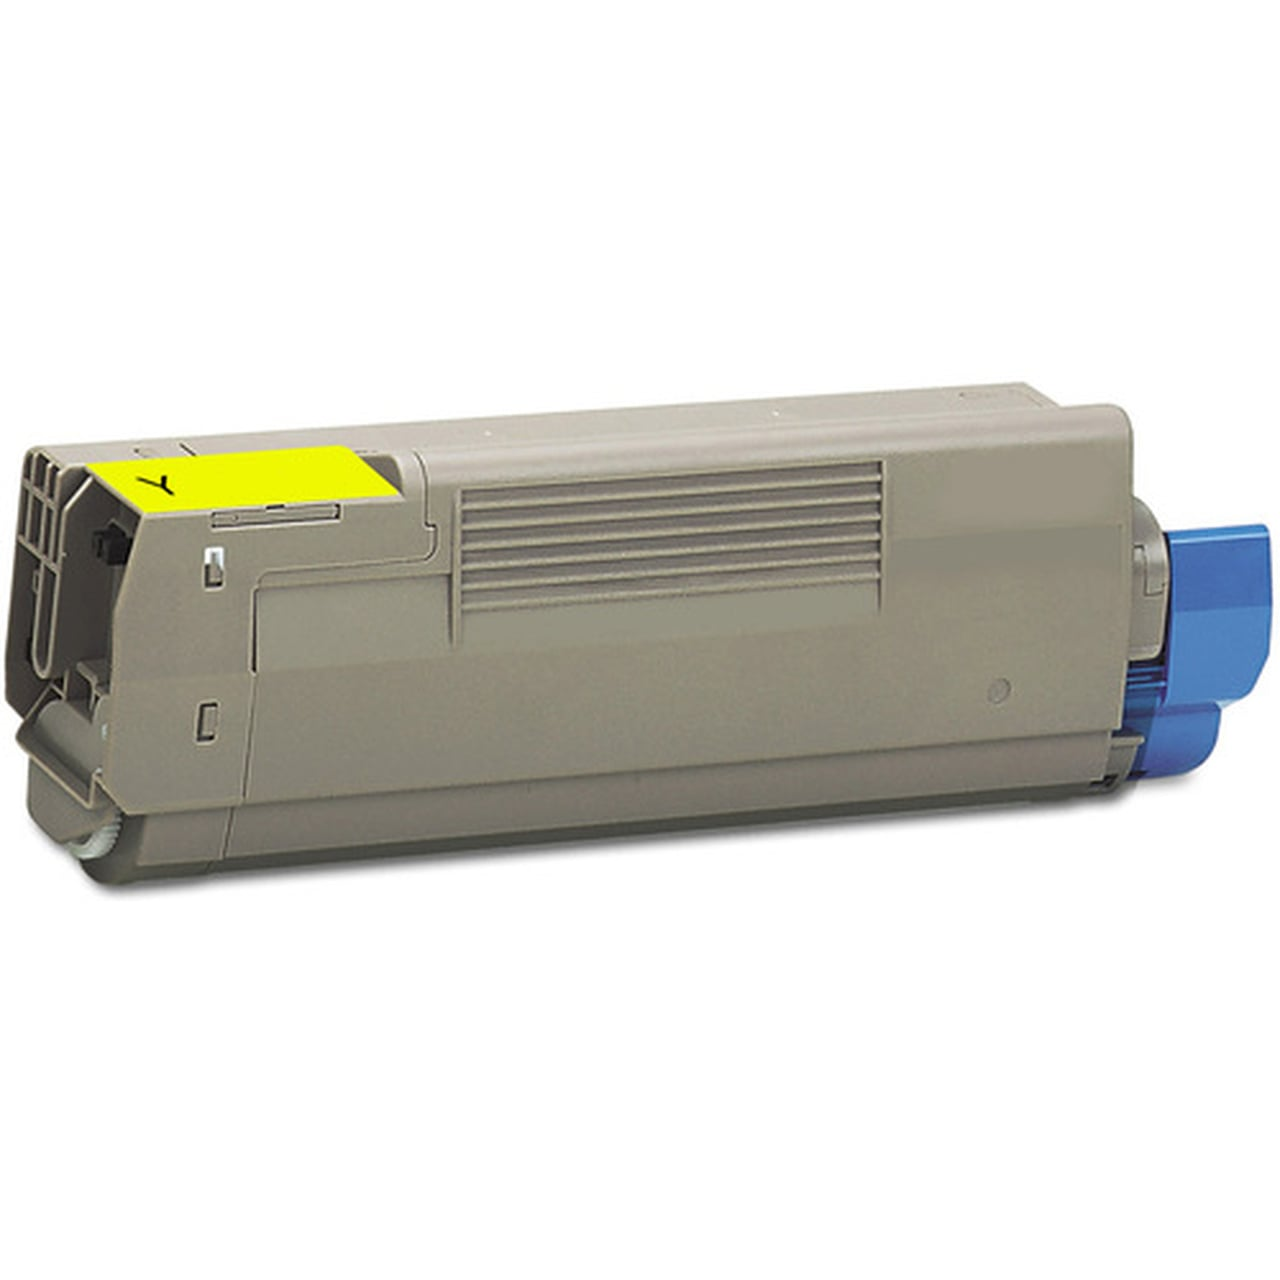 43865717 Toner Cartridge - Okidata Compatible (Yellow)